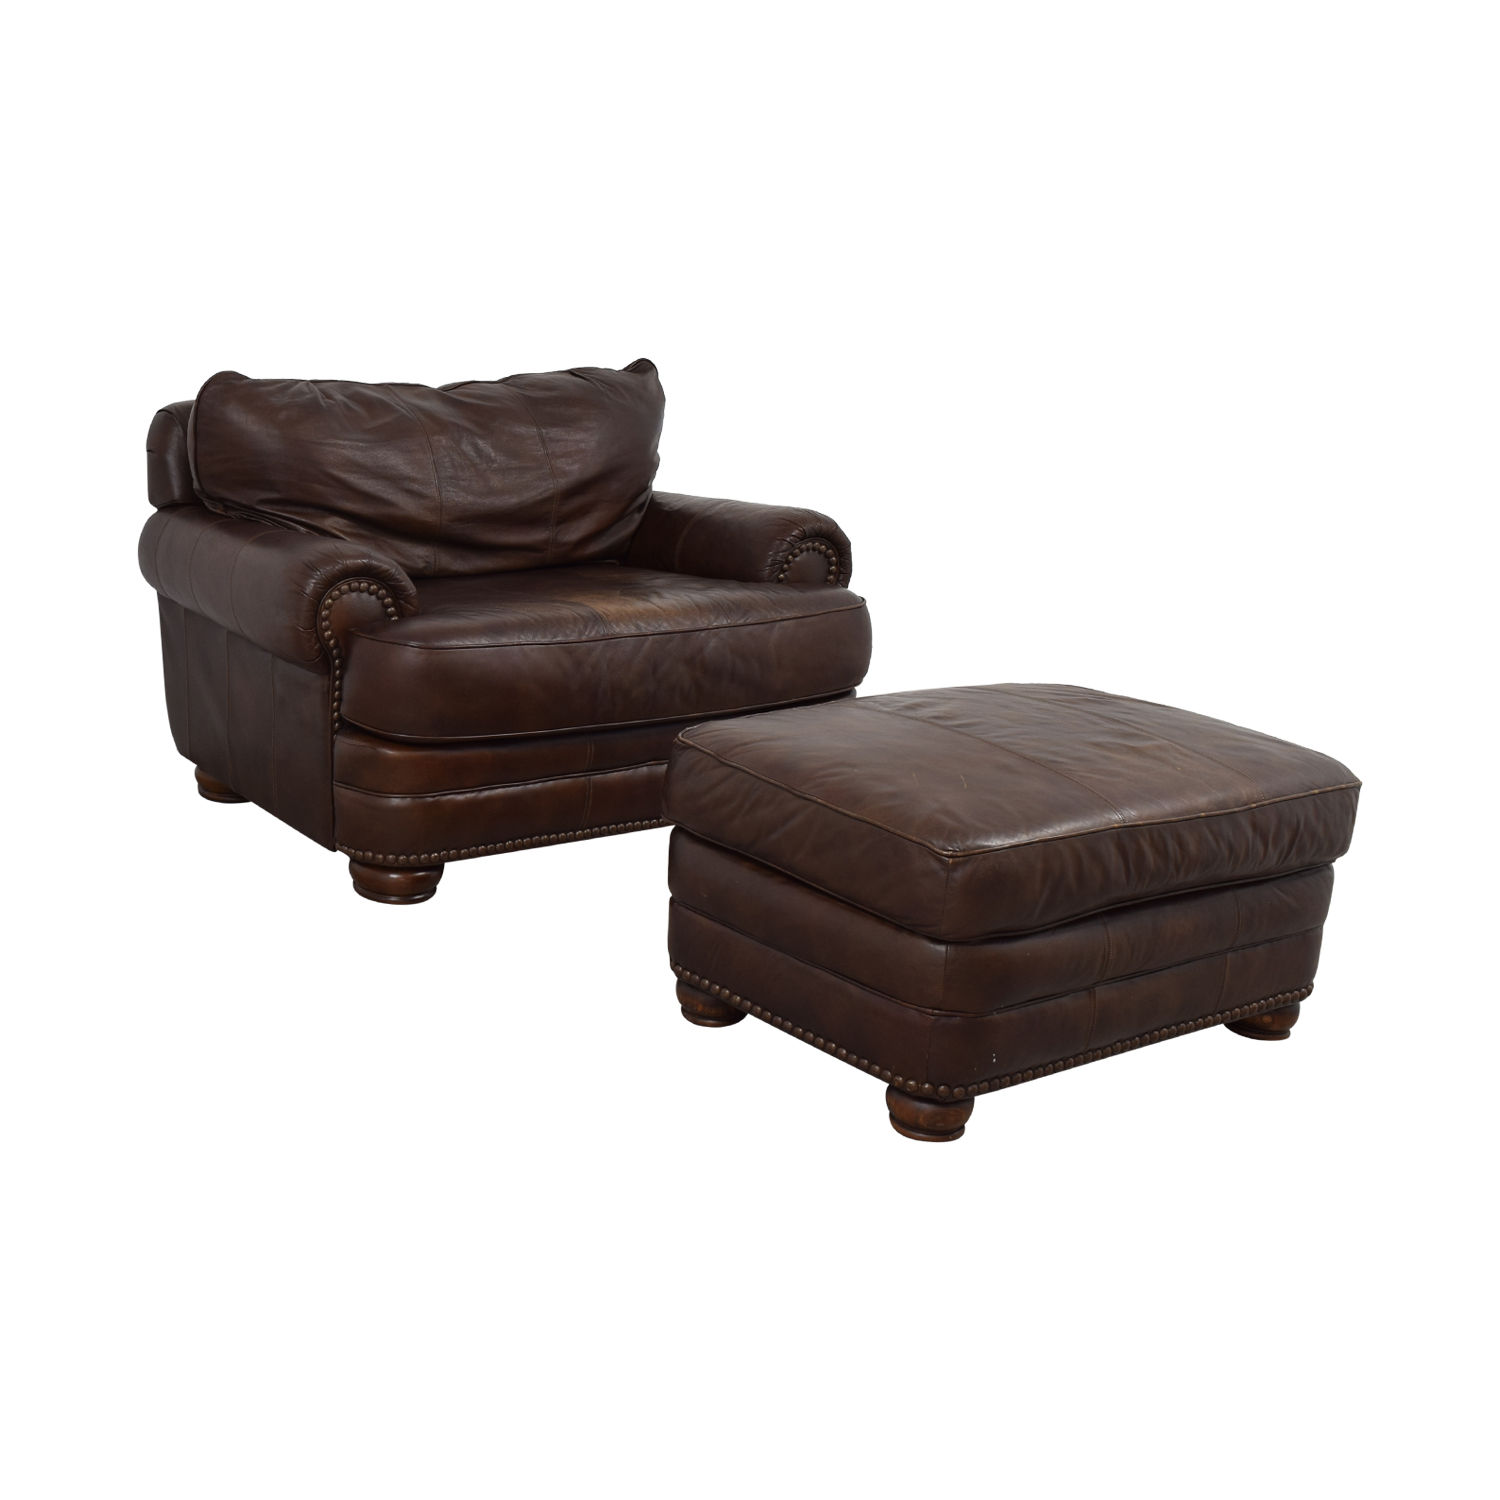 Peachy 68 Off Lane Furniture Lane Furniture Brown Leather Chair And Ottoman Chairs Evergreenethics Interior Chair Design Evergreenethicsorg